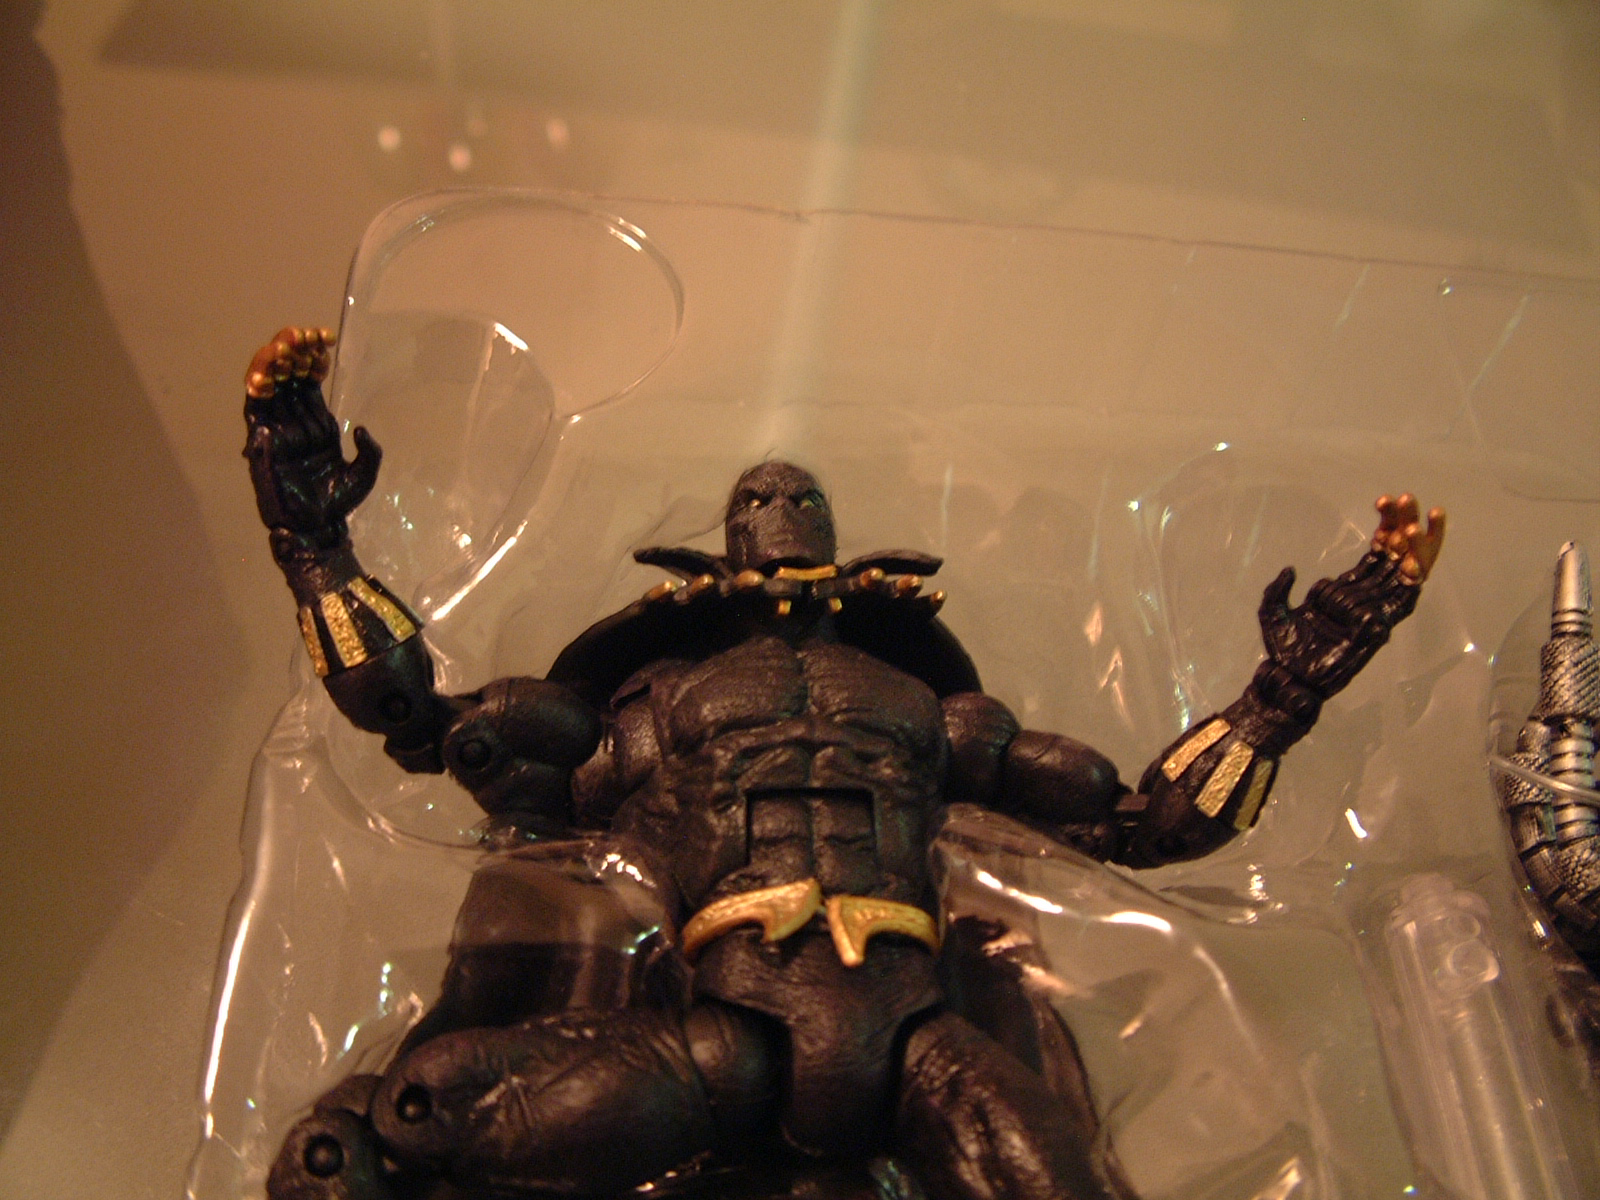 Black Panther exploding from his packaging